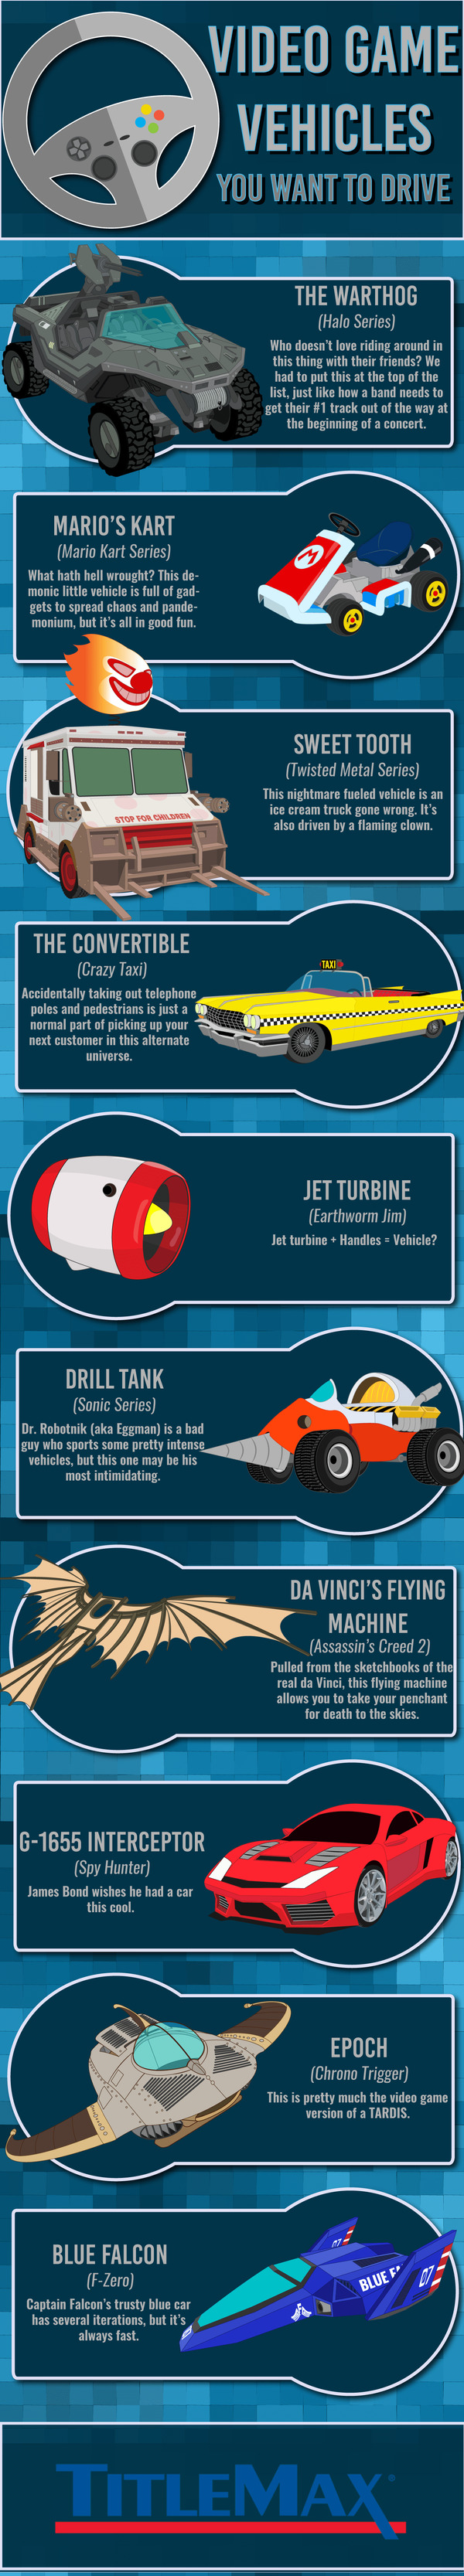 Video Game Vehicles You Want to Drive